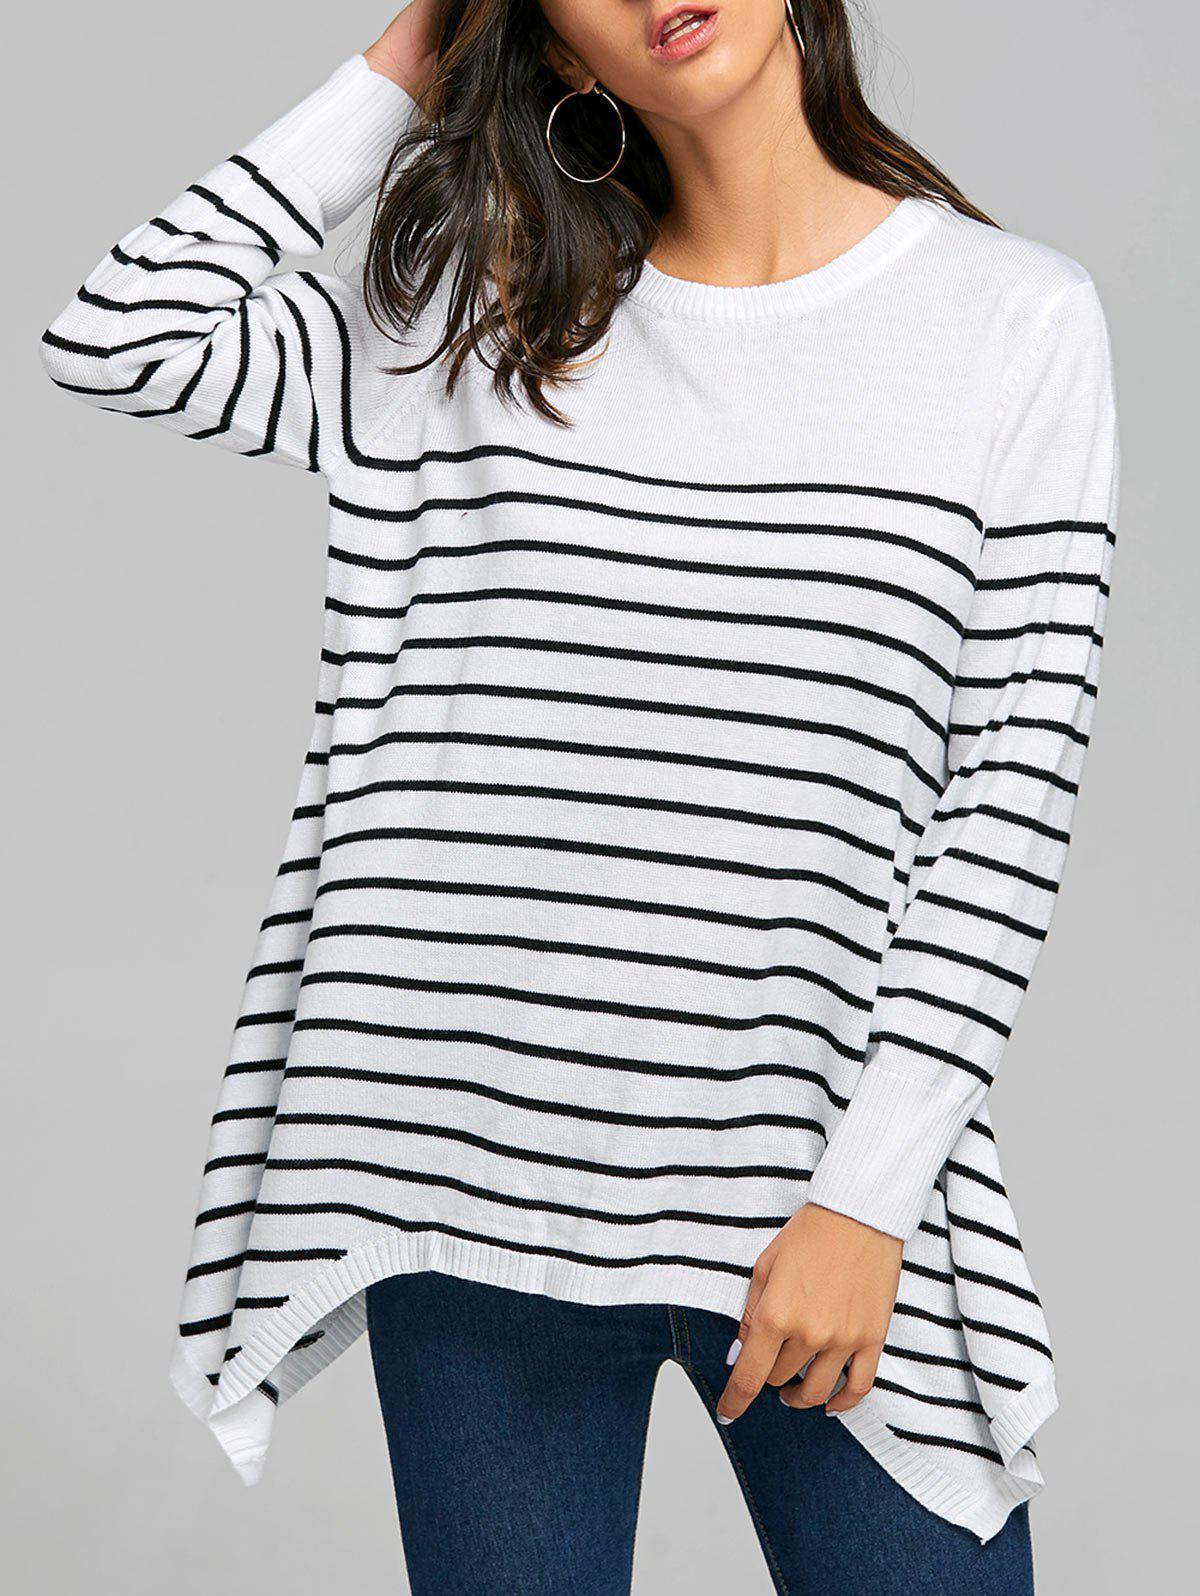 Striped Loose Fitting Asymmetrical Knitwear - WHITE XL